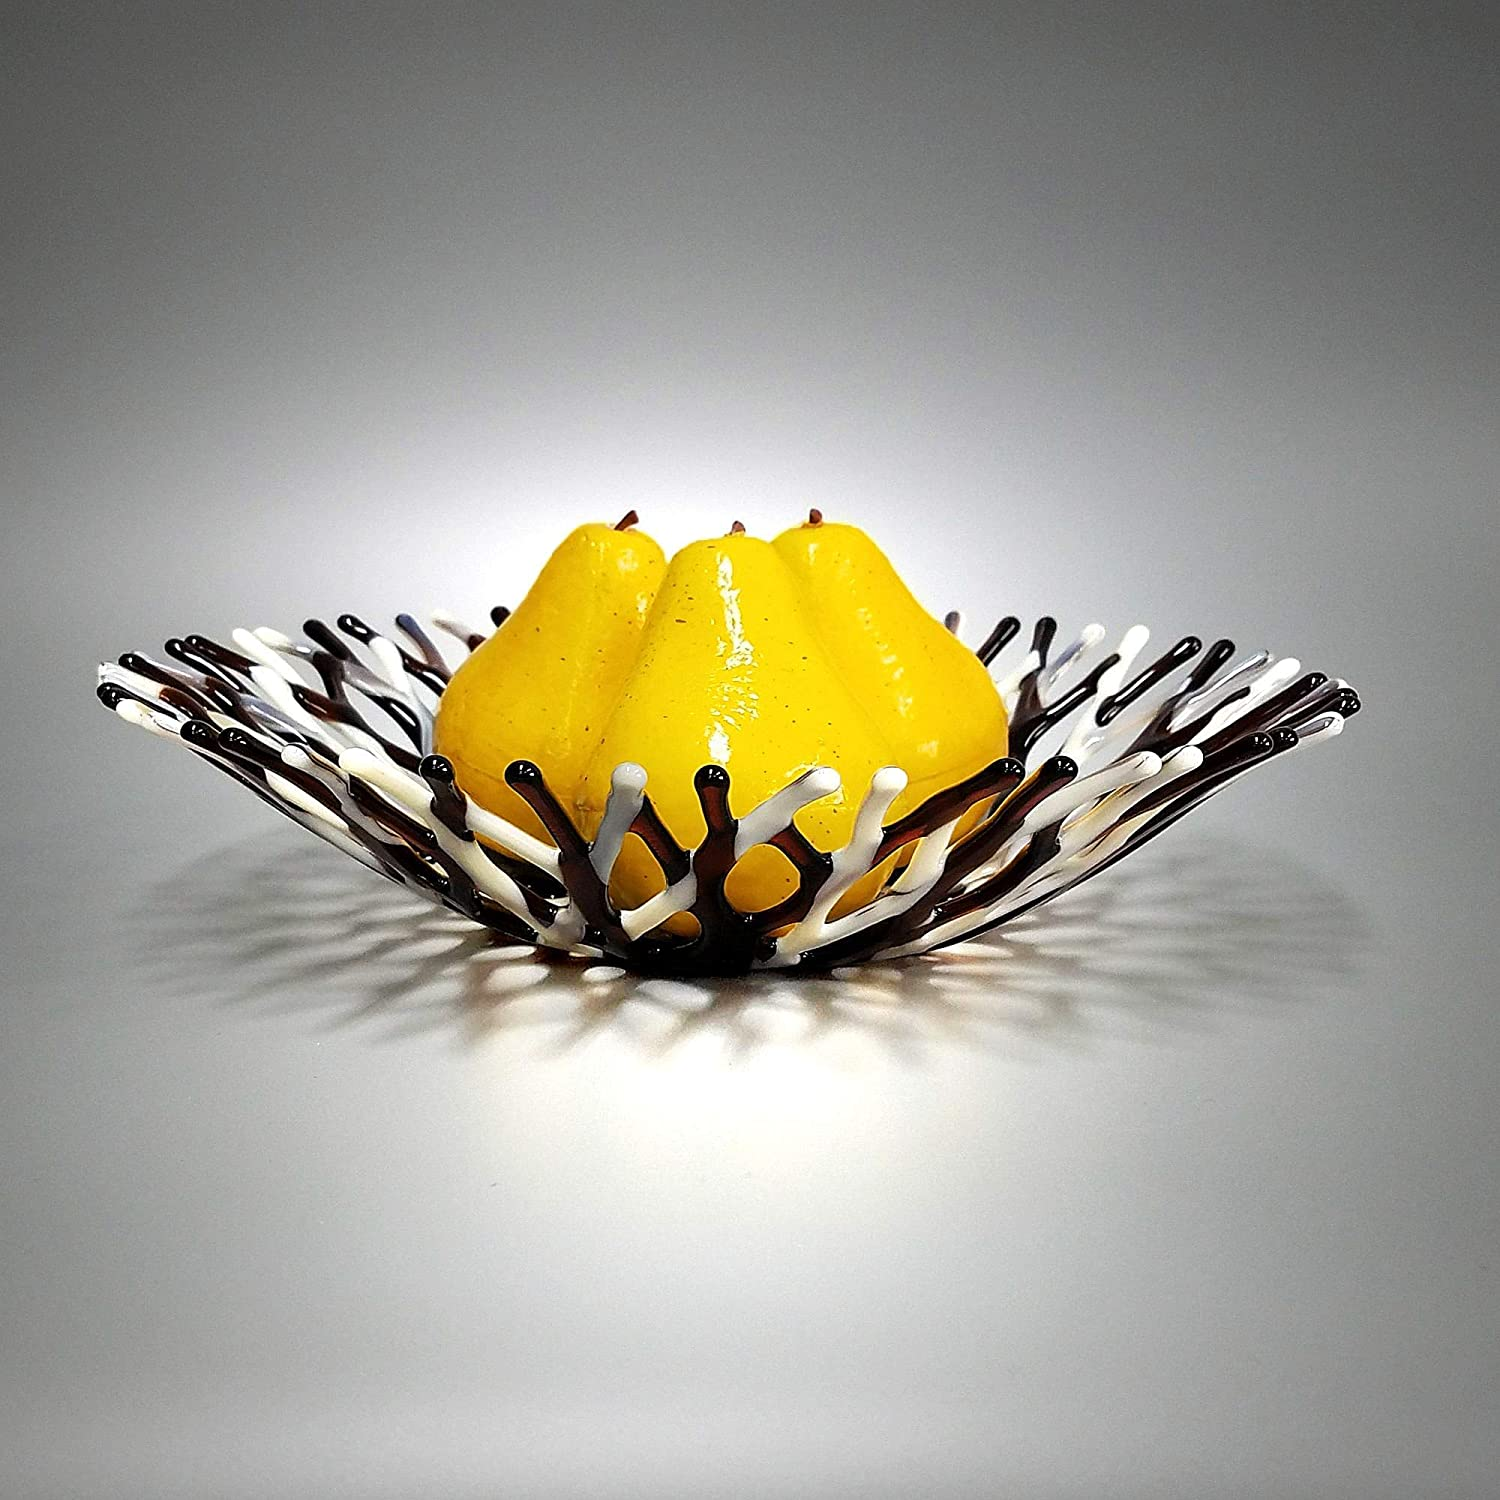 Lacy Glass Art Fruit Bowl in Almond Tan Gray and Brown